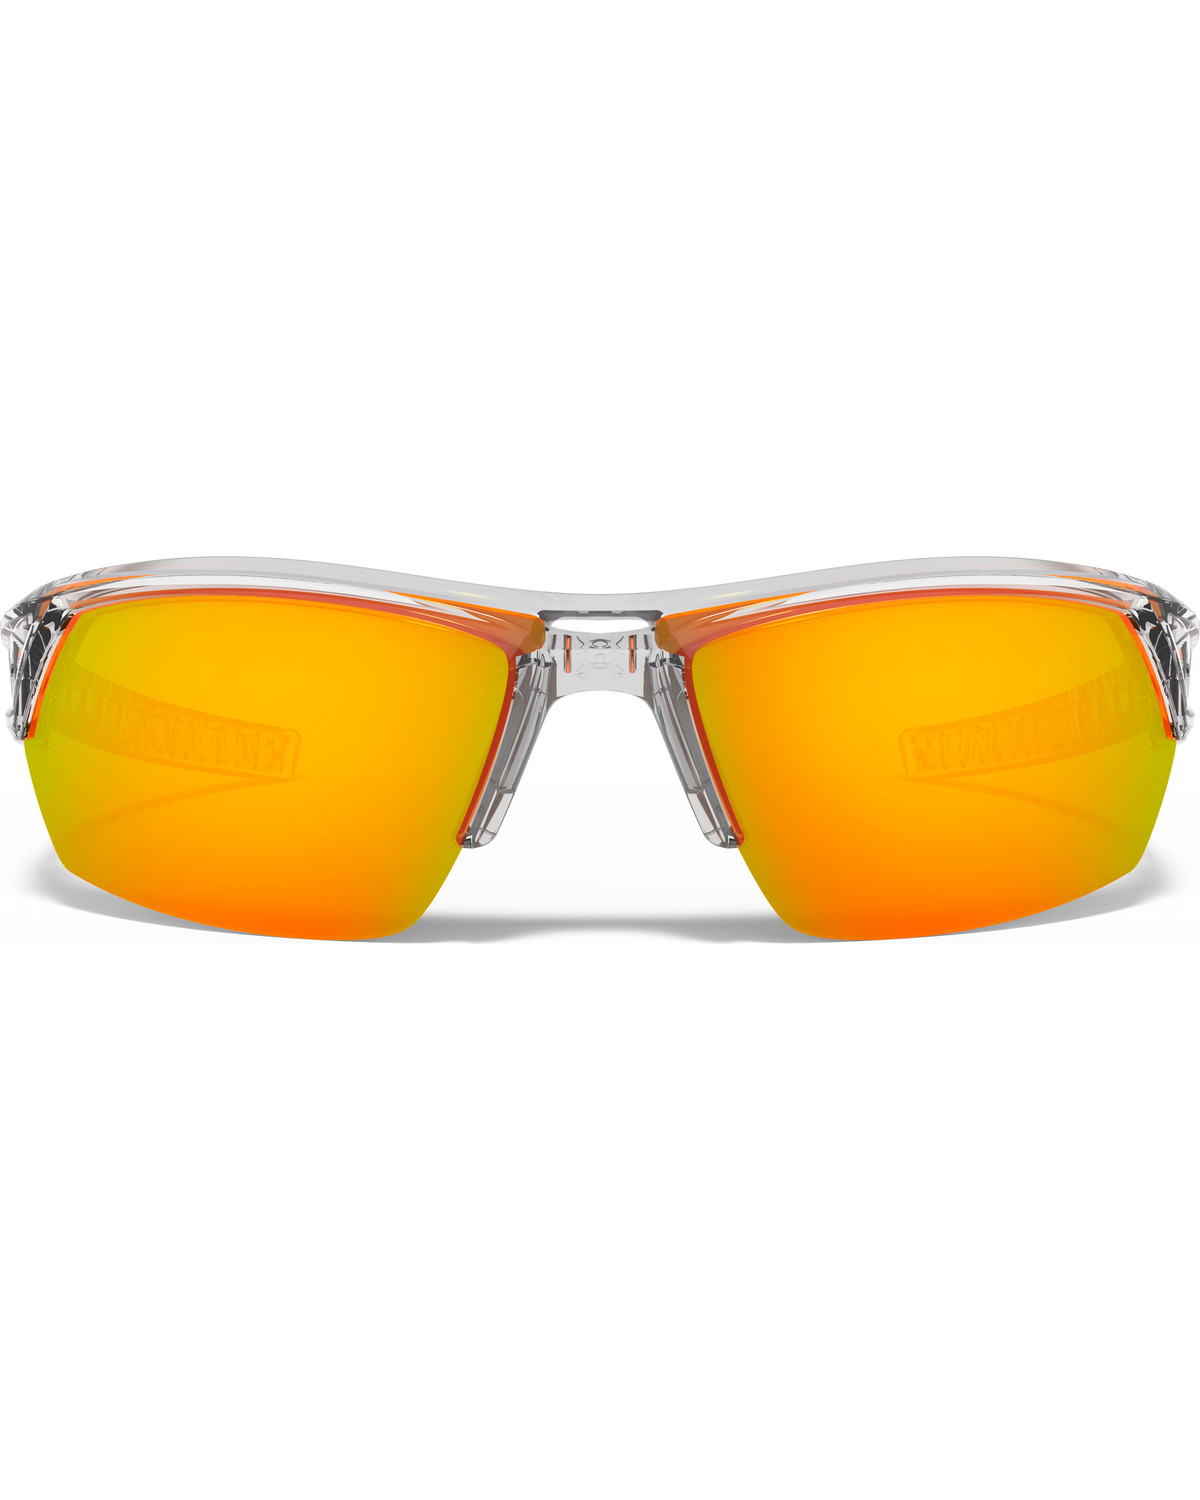 65d483d07fd Under Armour Crystal Clear Igniter 2.0 Sunglasses